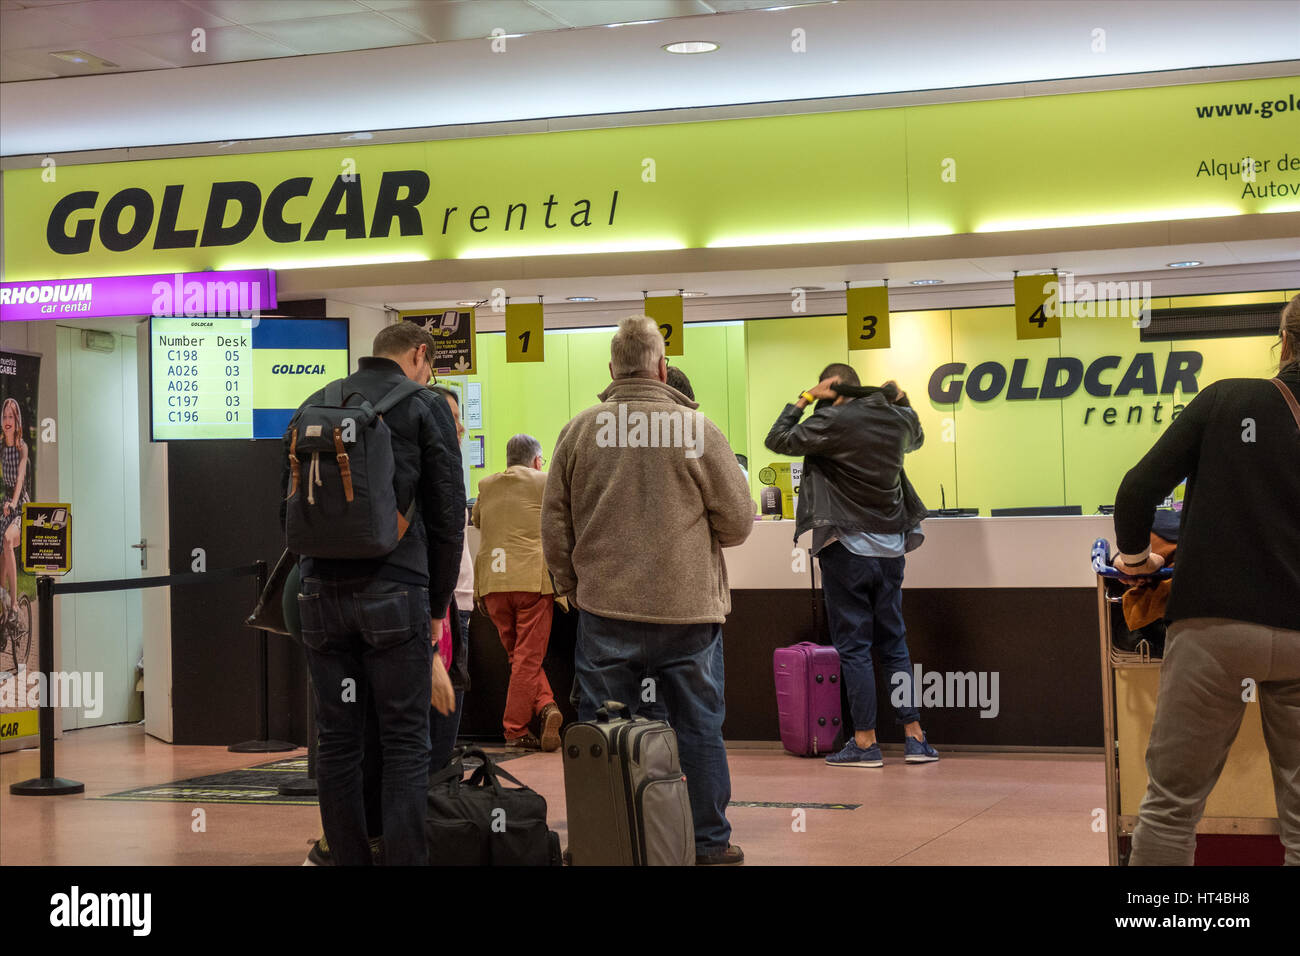 airport rent car stockfotos airport rent car bilder alamy. Black Bedroom Furniture Sets. Home Design Ideas